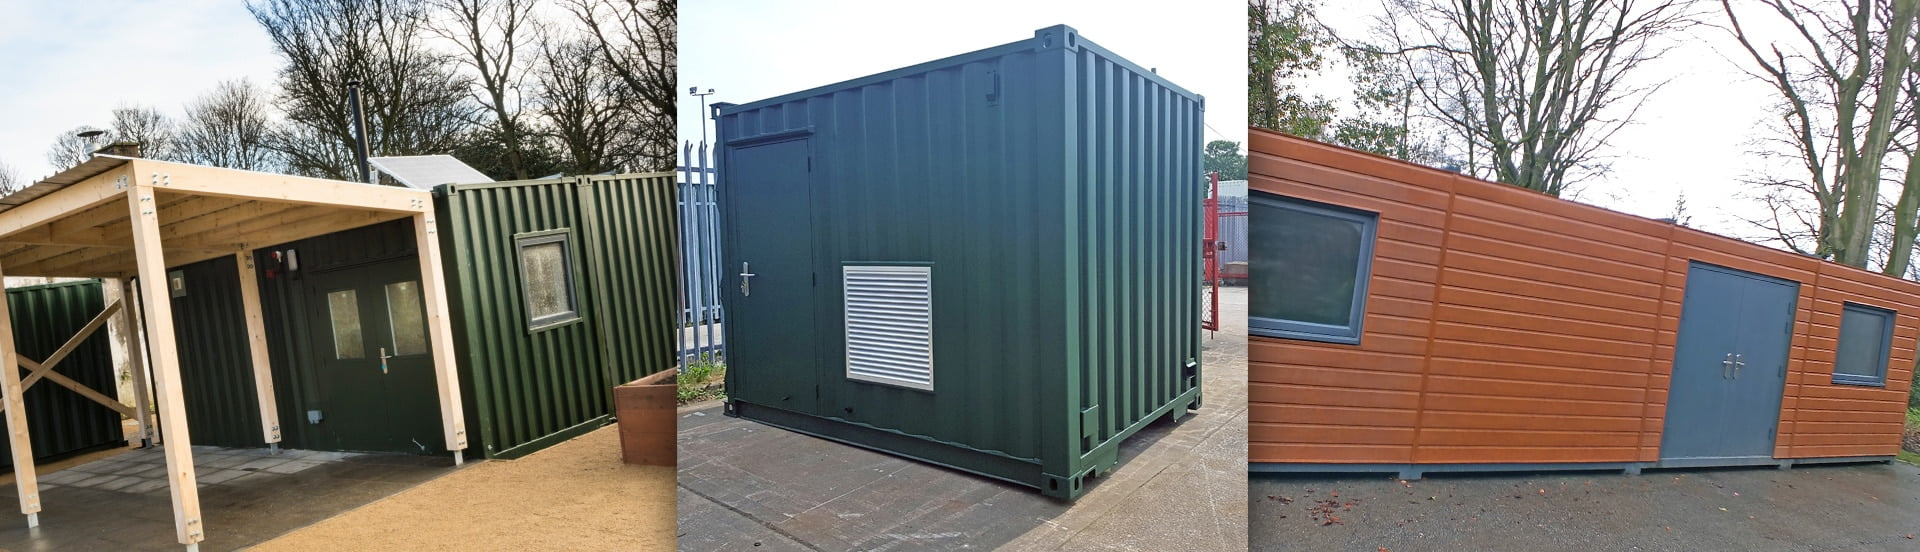 Container Personnel Doors